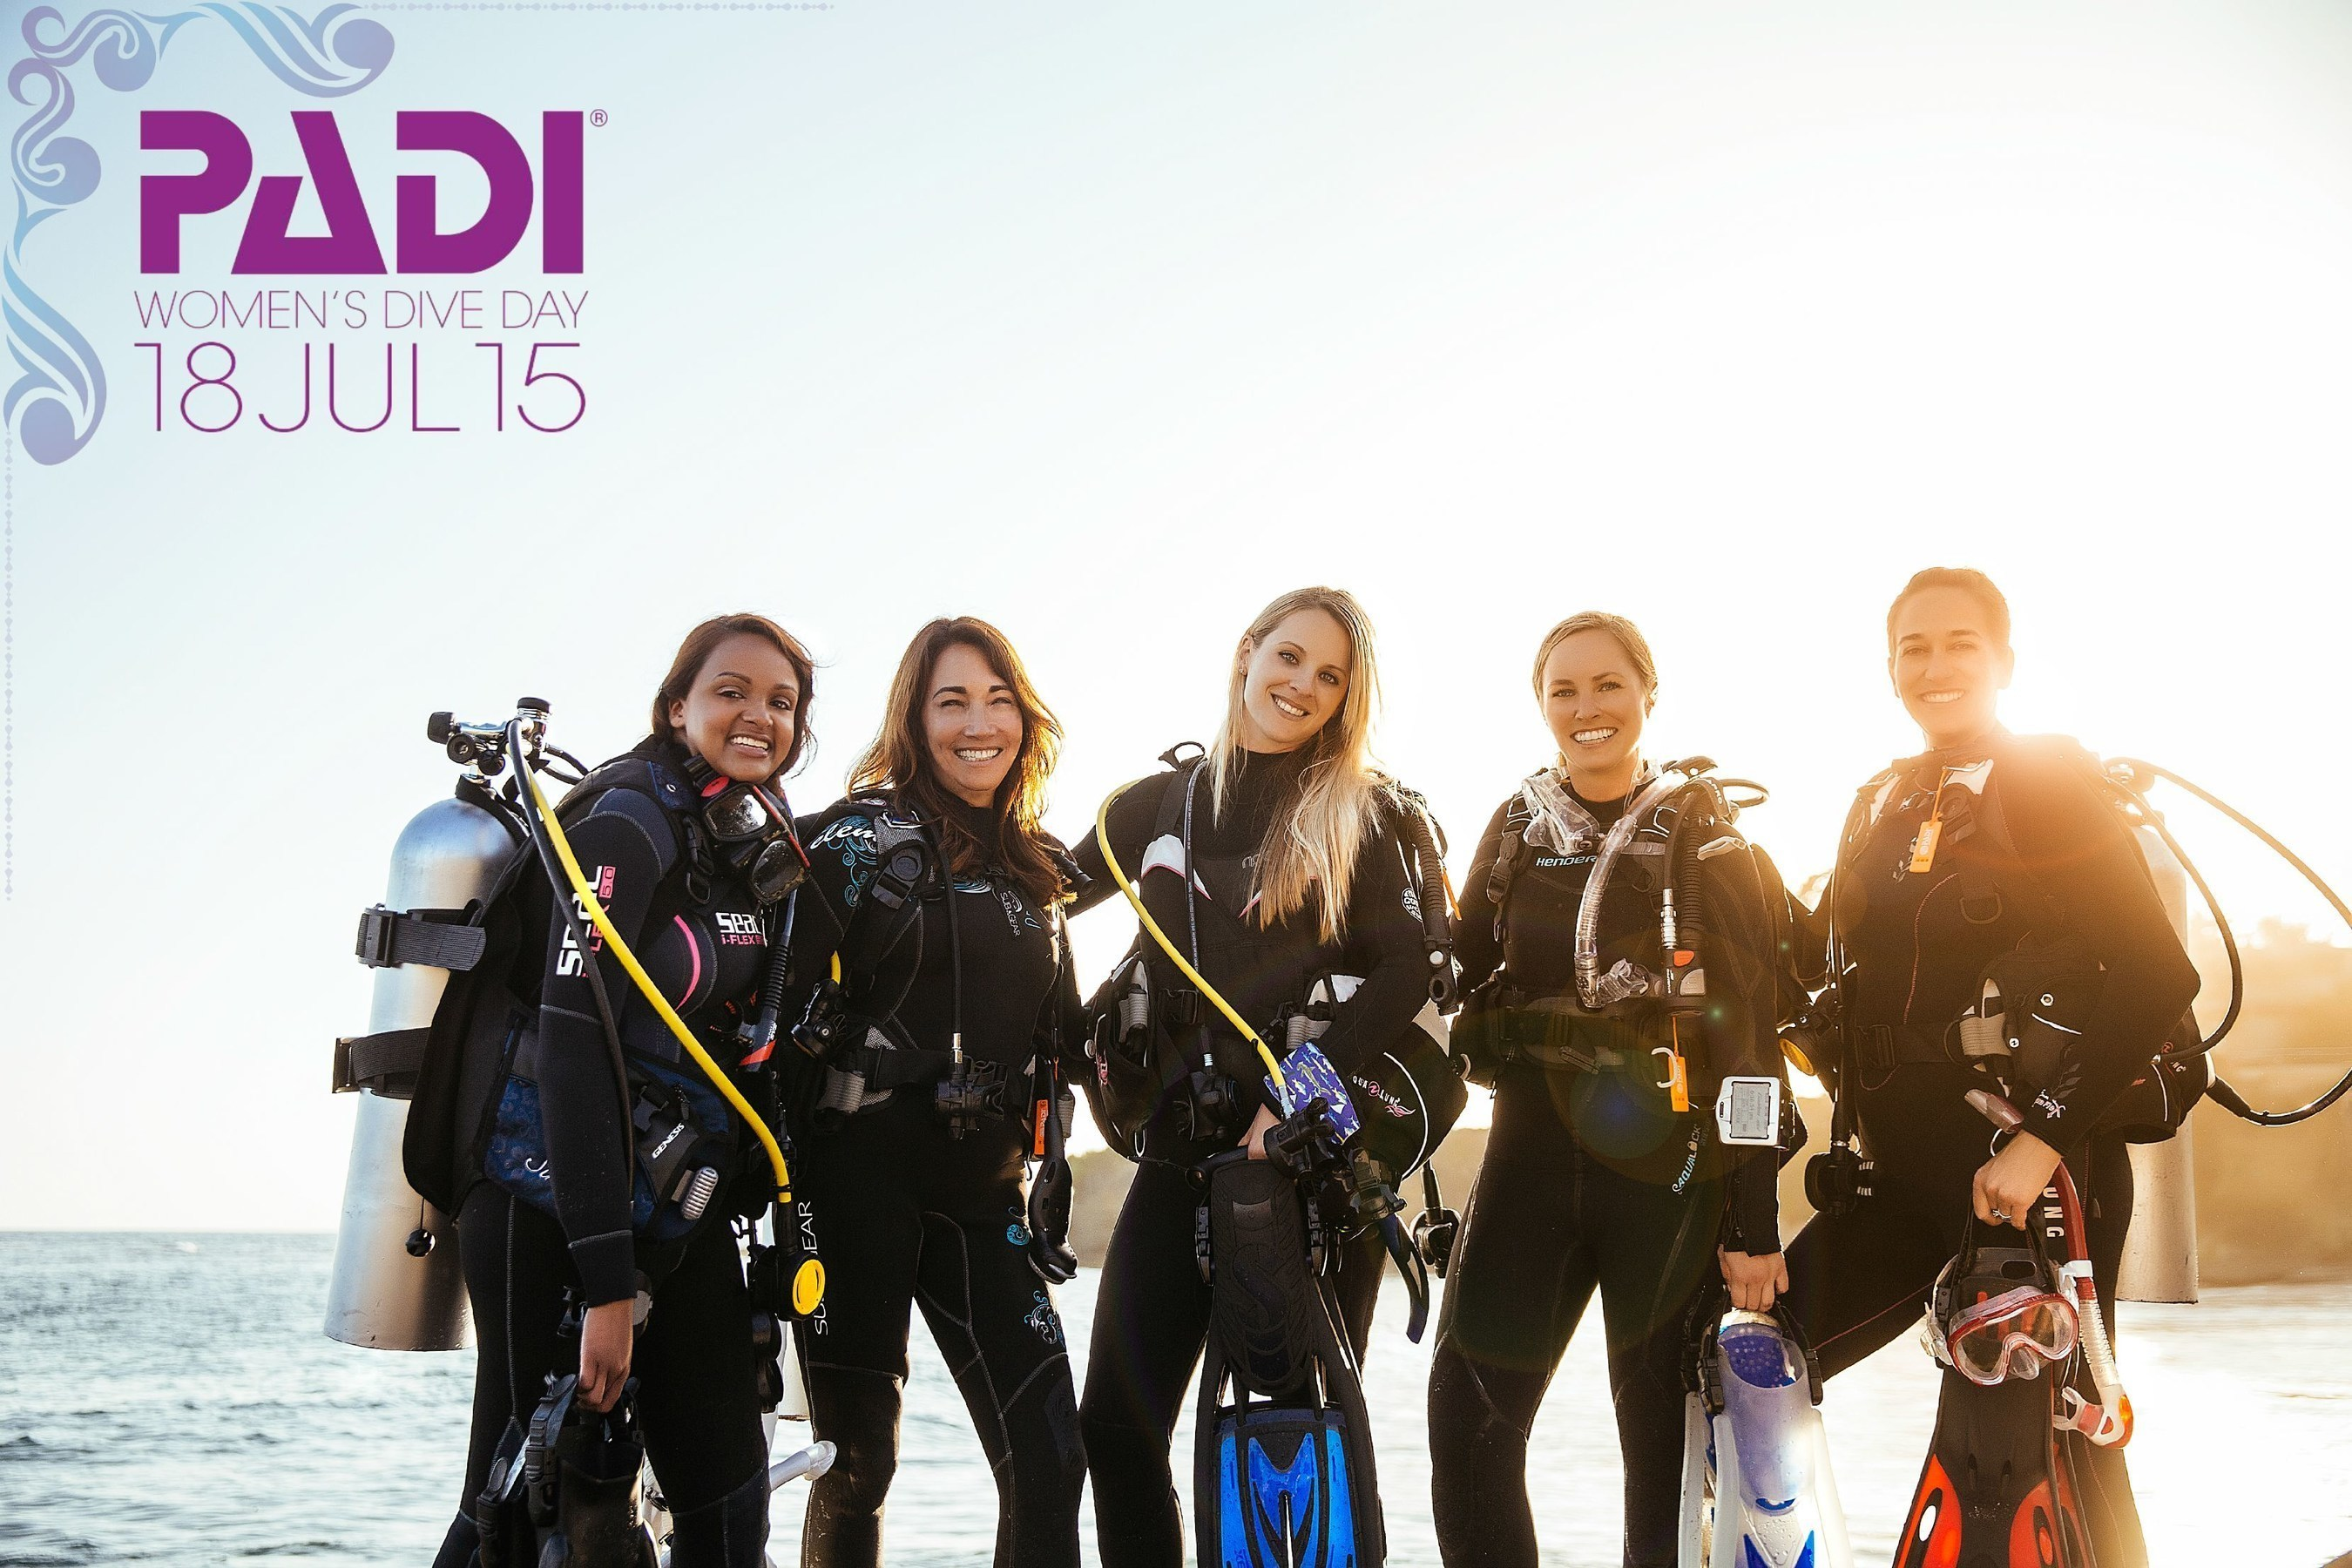 PADI Launches Inaugural Women's Dive Day, July 18